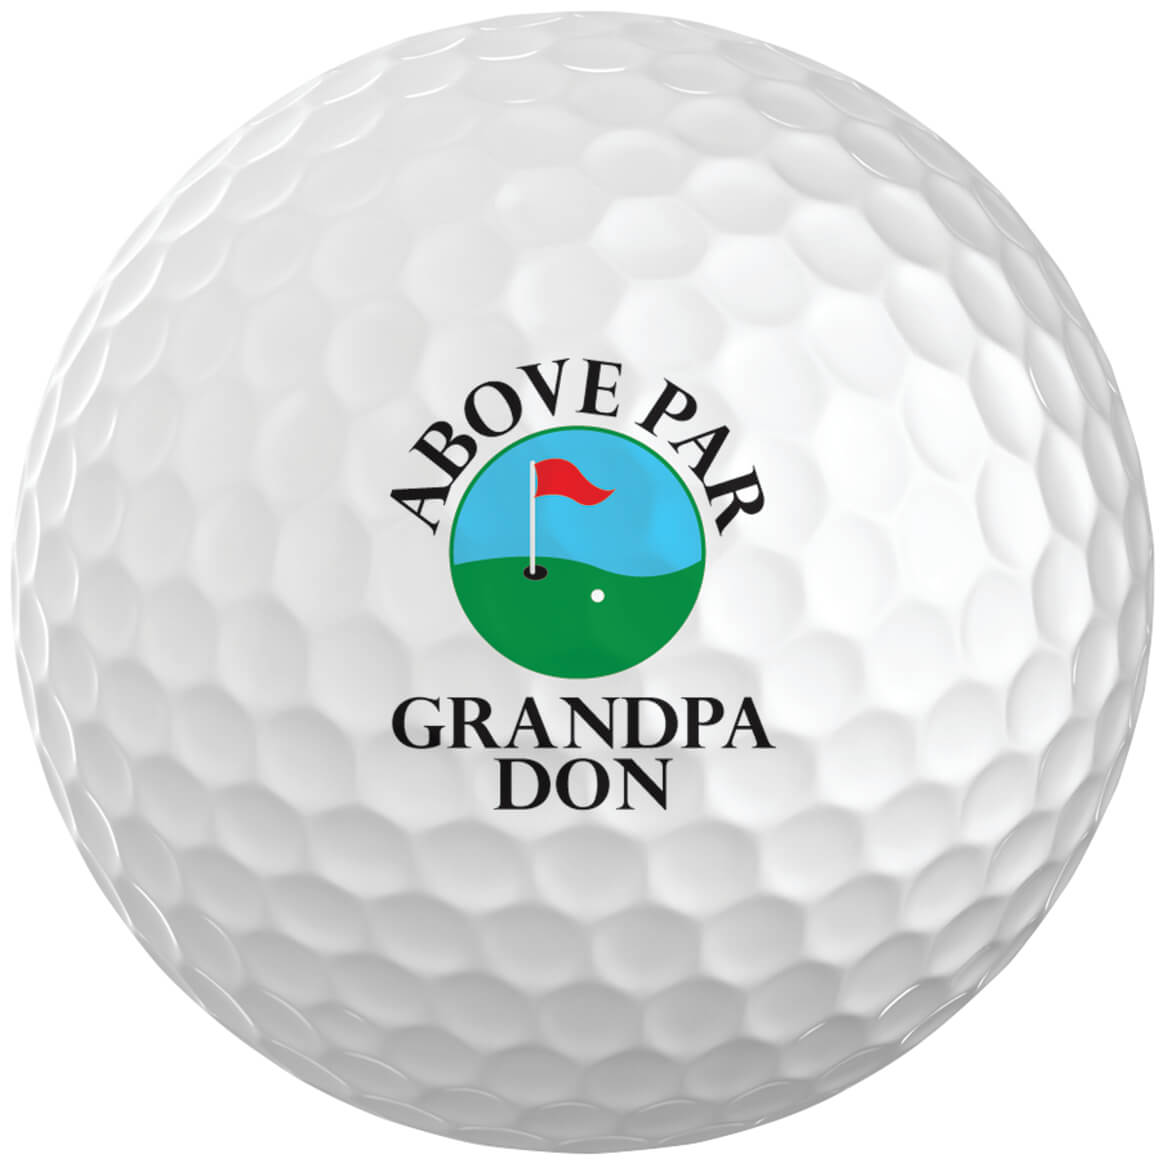 Personalized Golf Balls Entertainment Leisure Miles Kimball